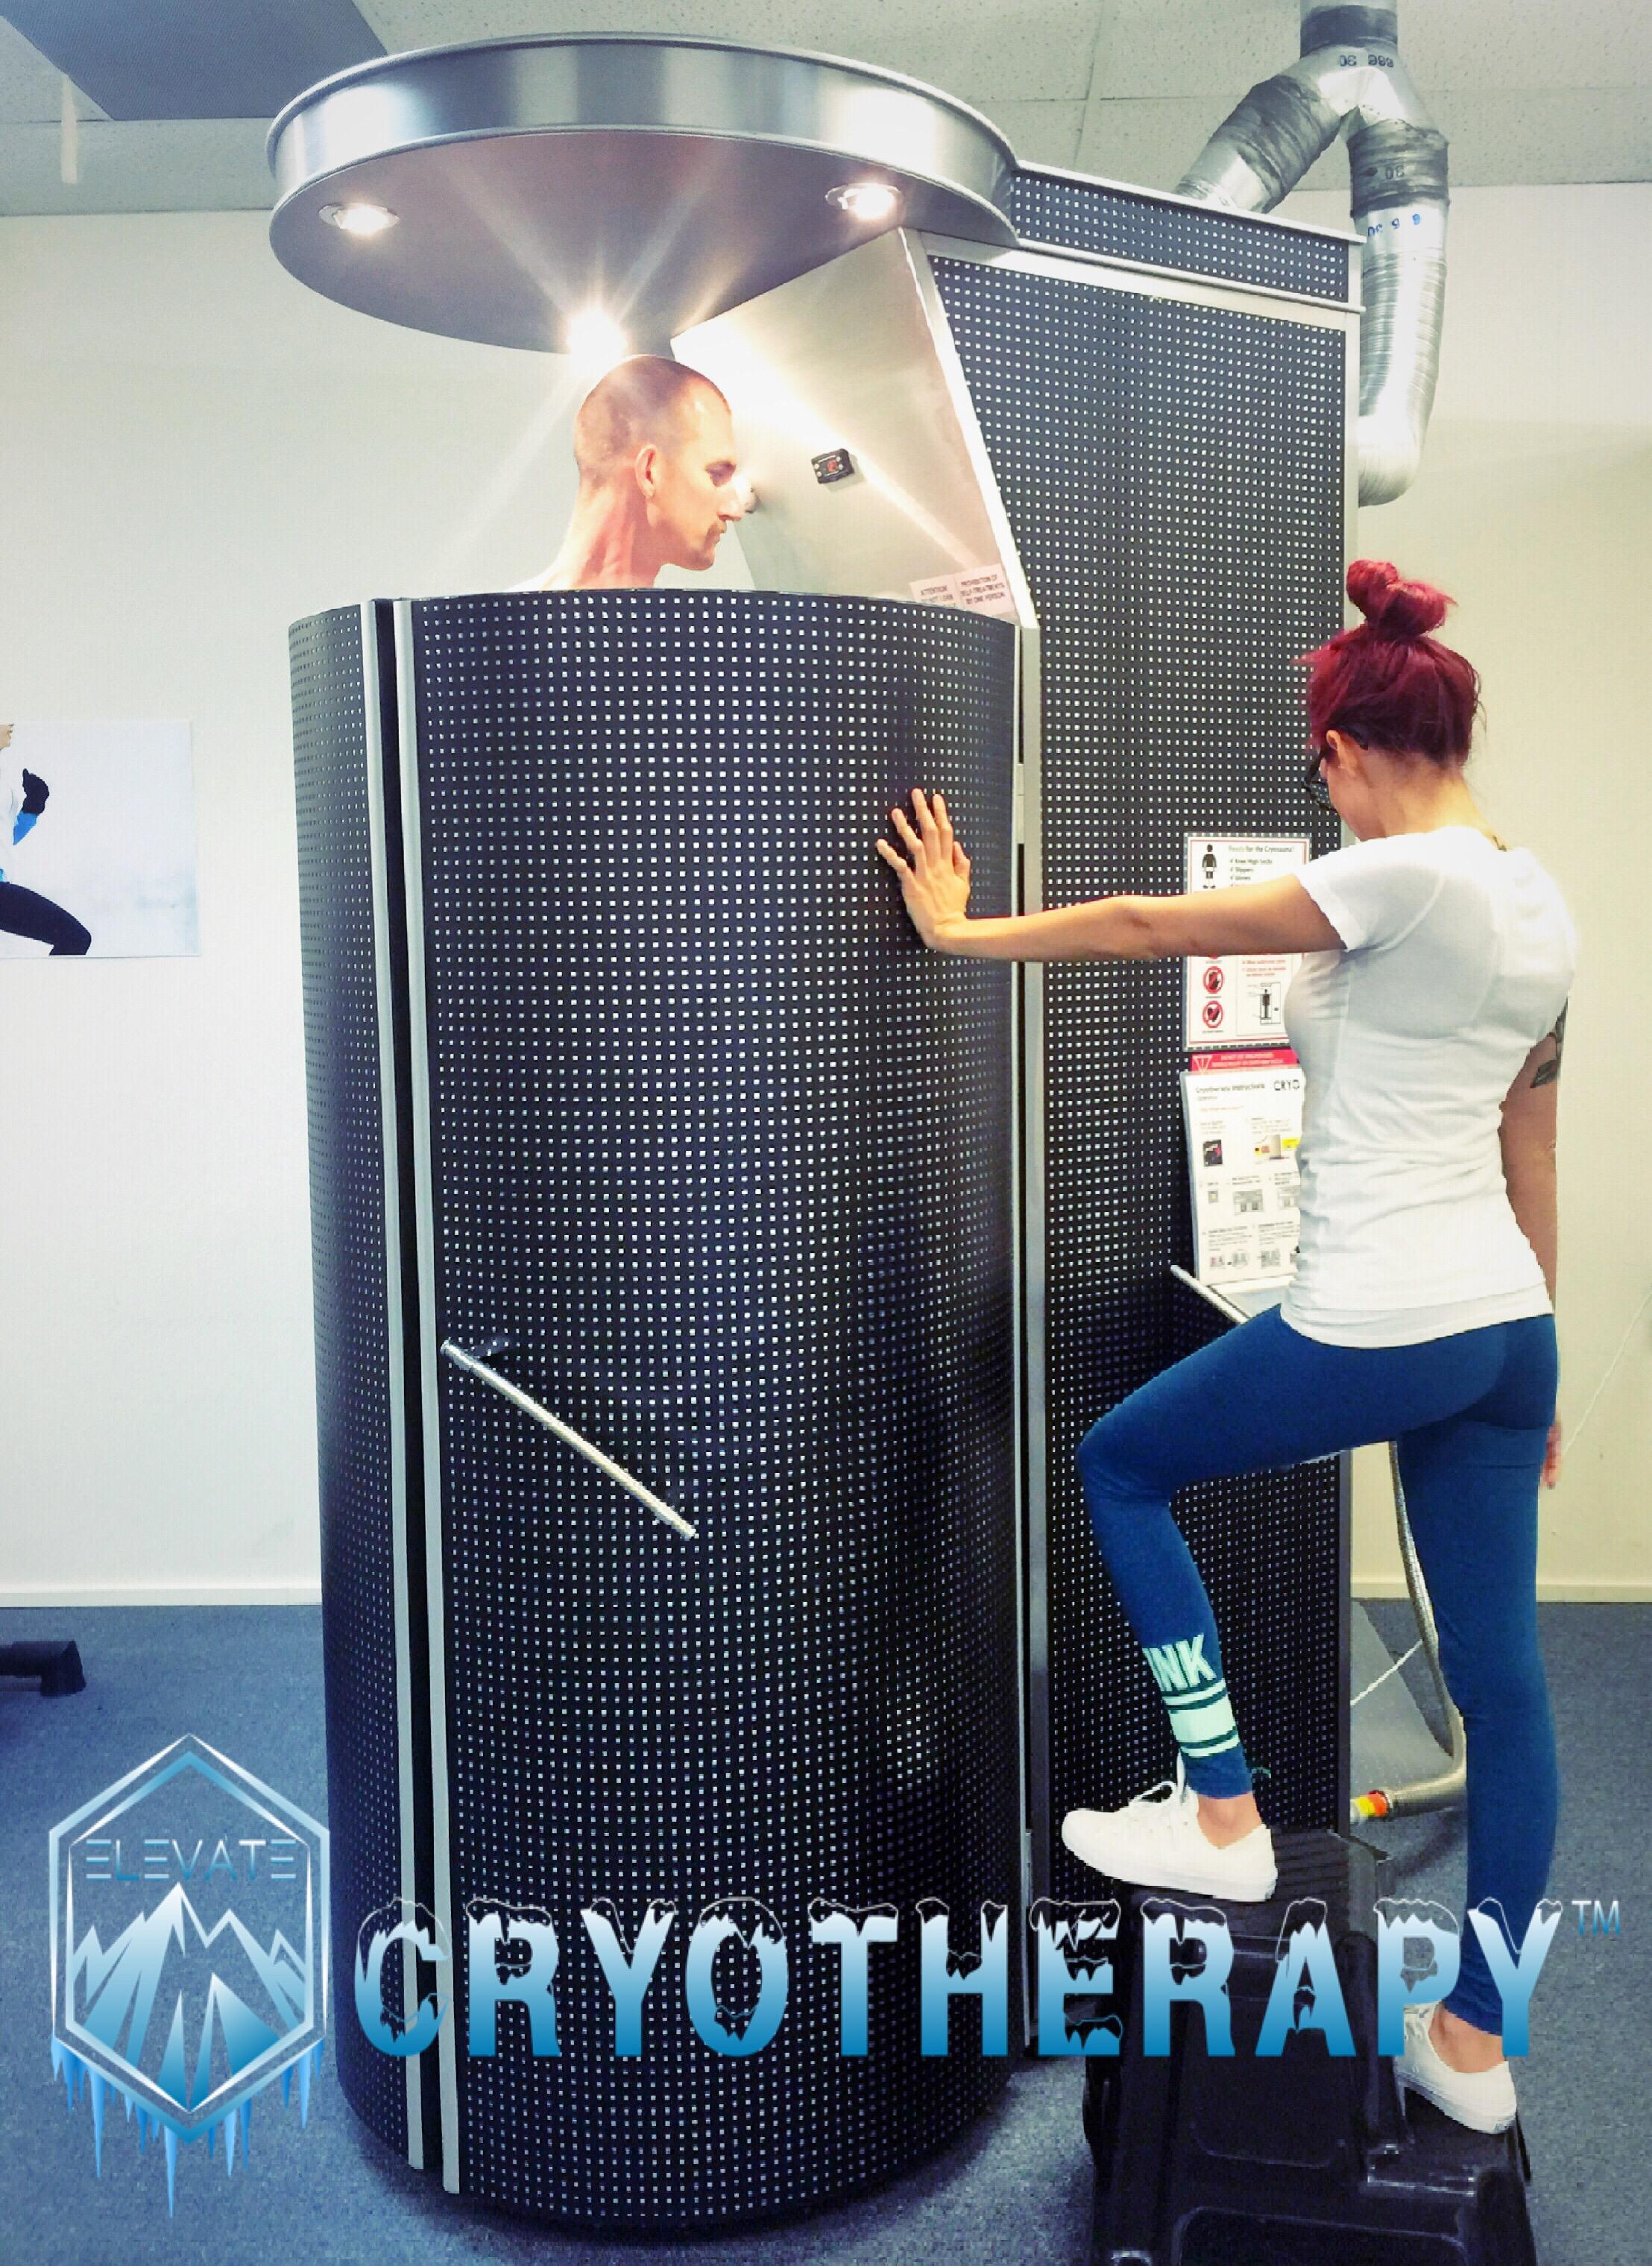 Elevate Cryotherapy image 2